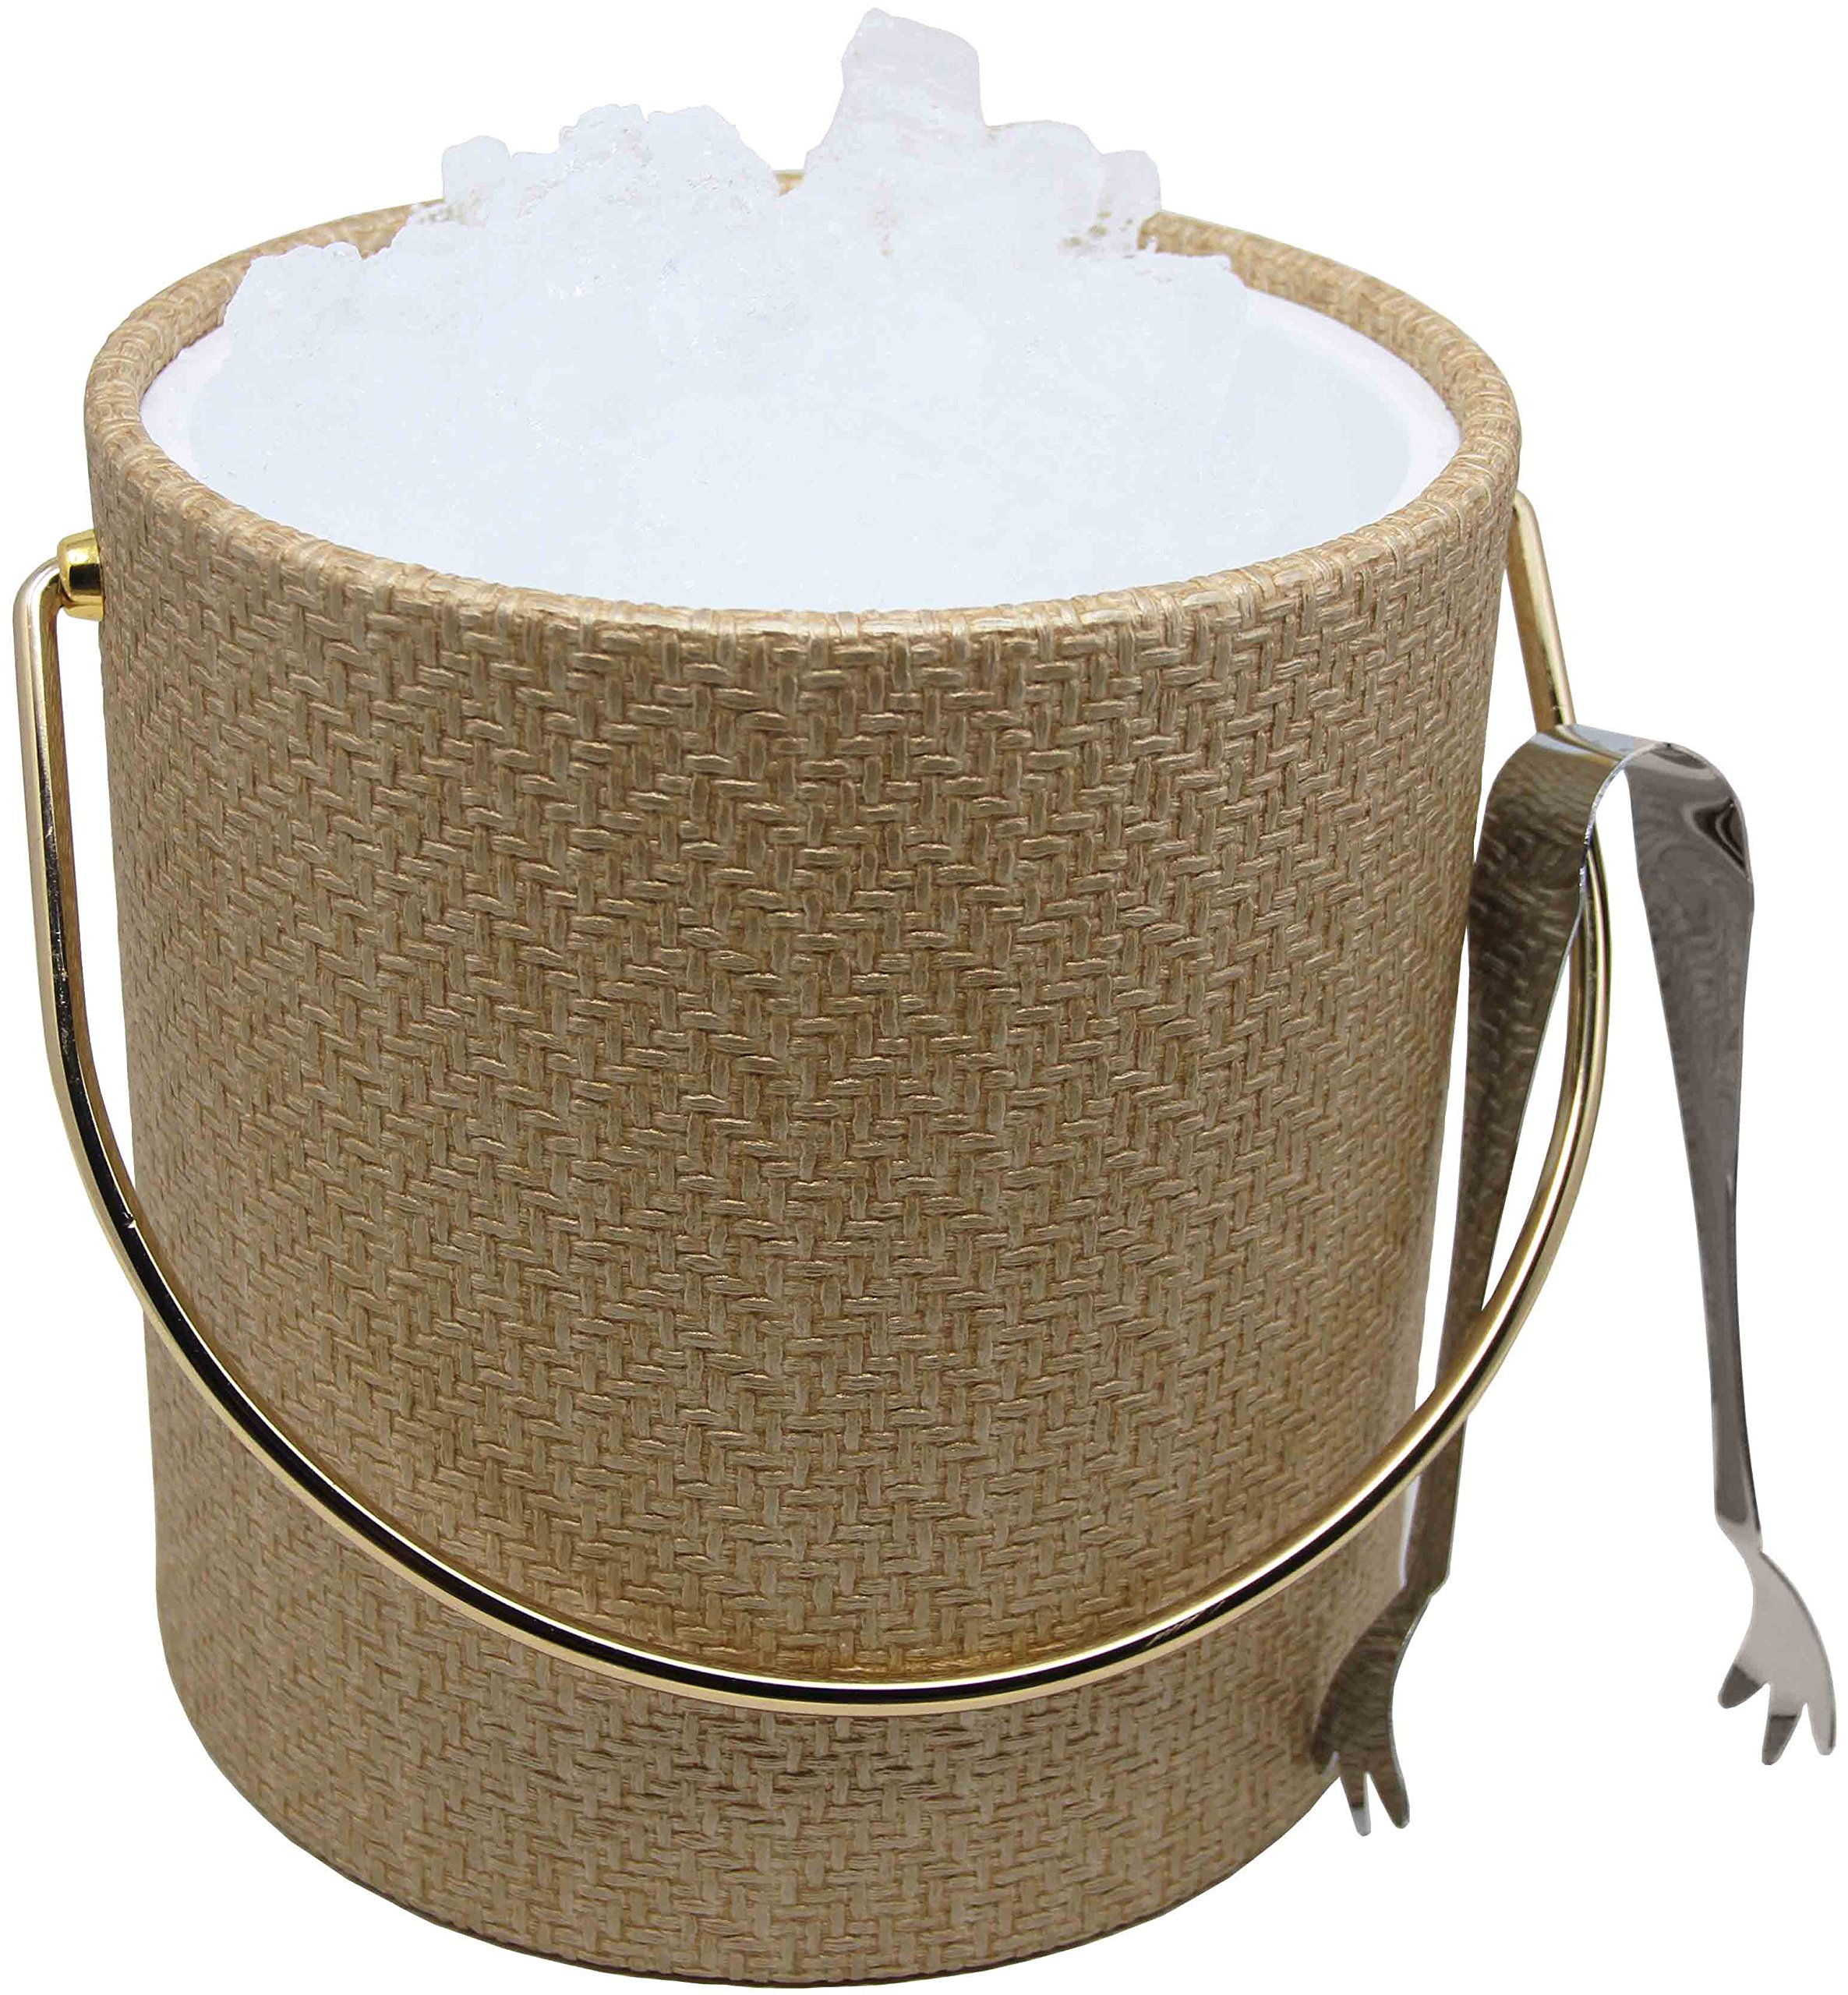 Hand Made In USA Double Walled 3-Quart Beige Metallic Wicker Insulated Ice Bucket With Bonus Ice Tongs